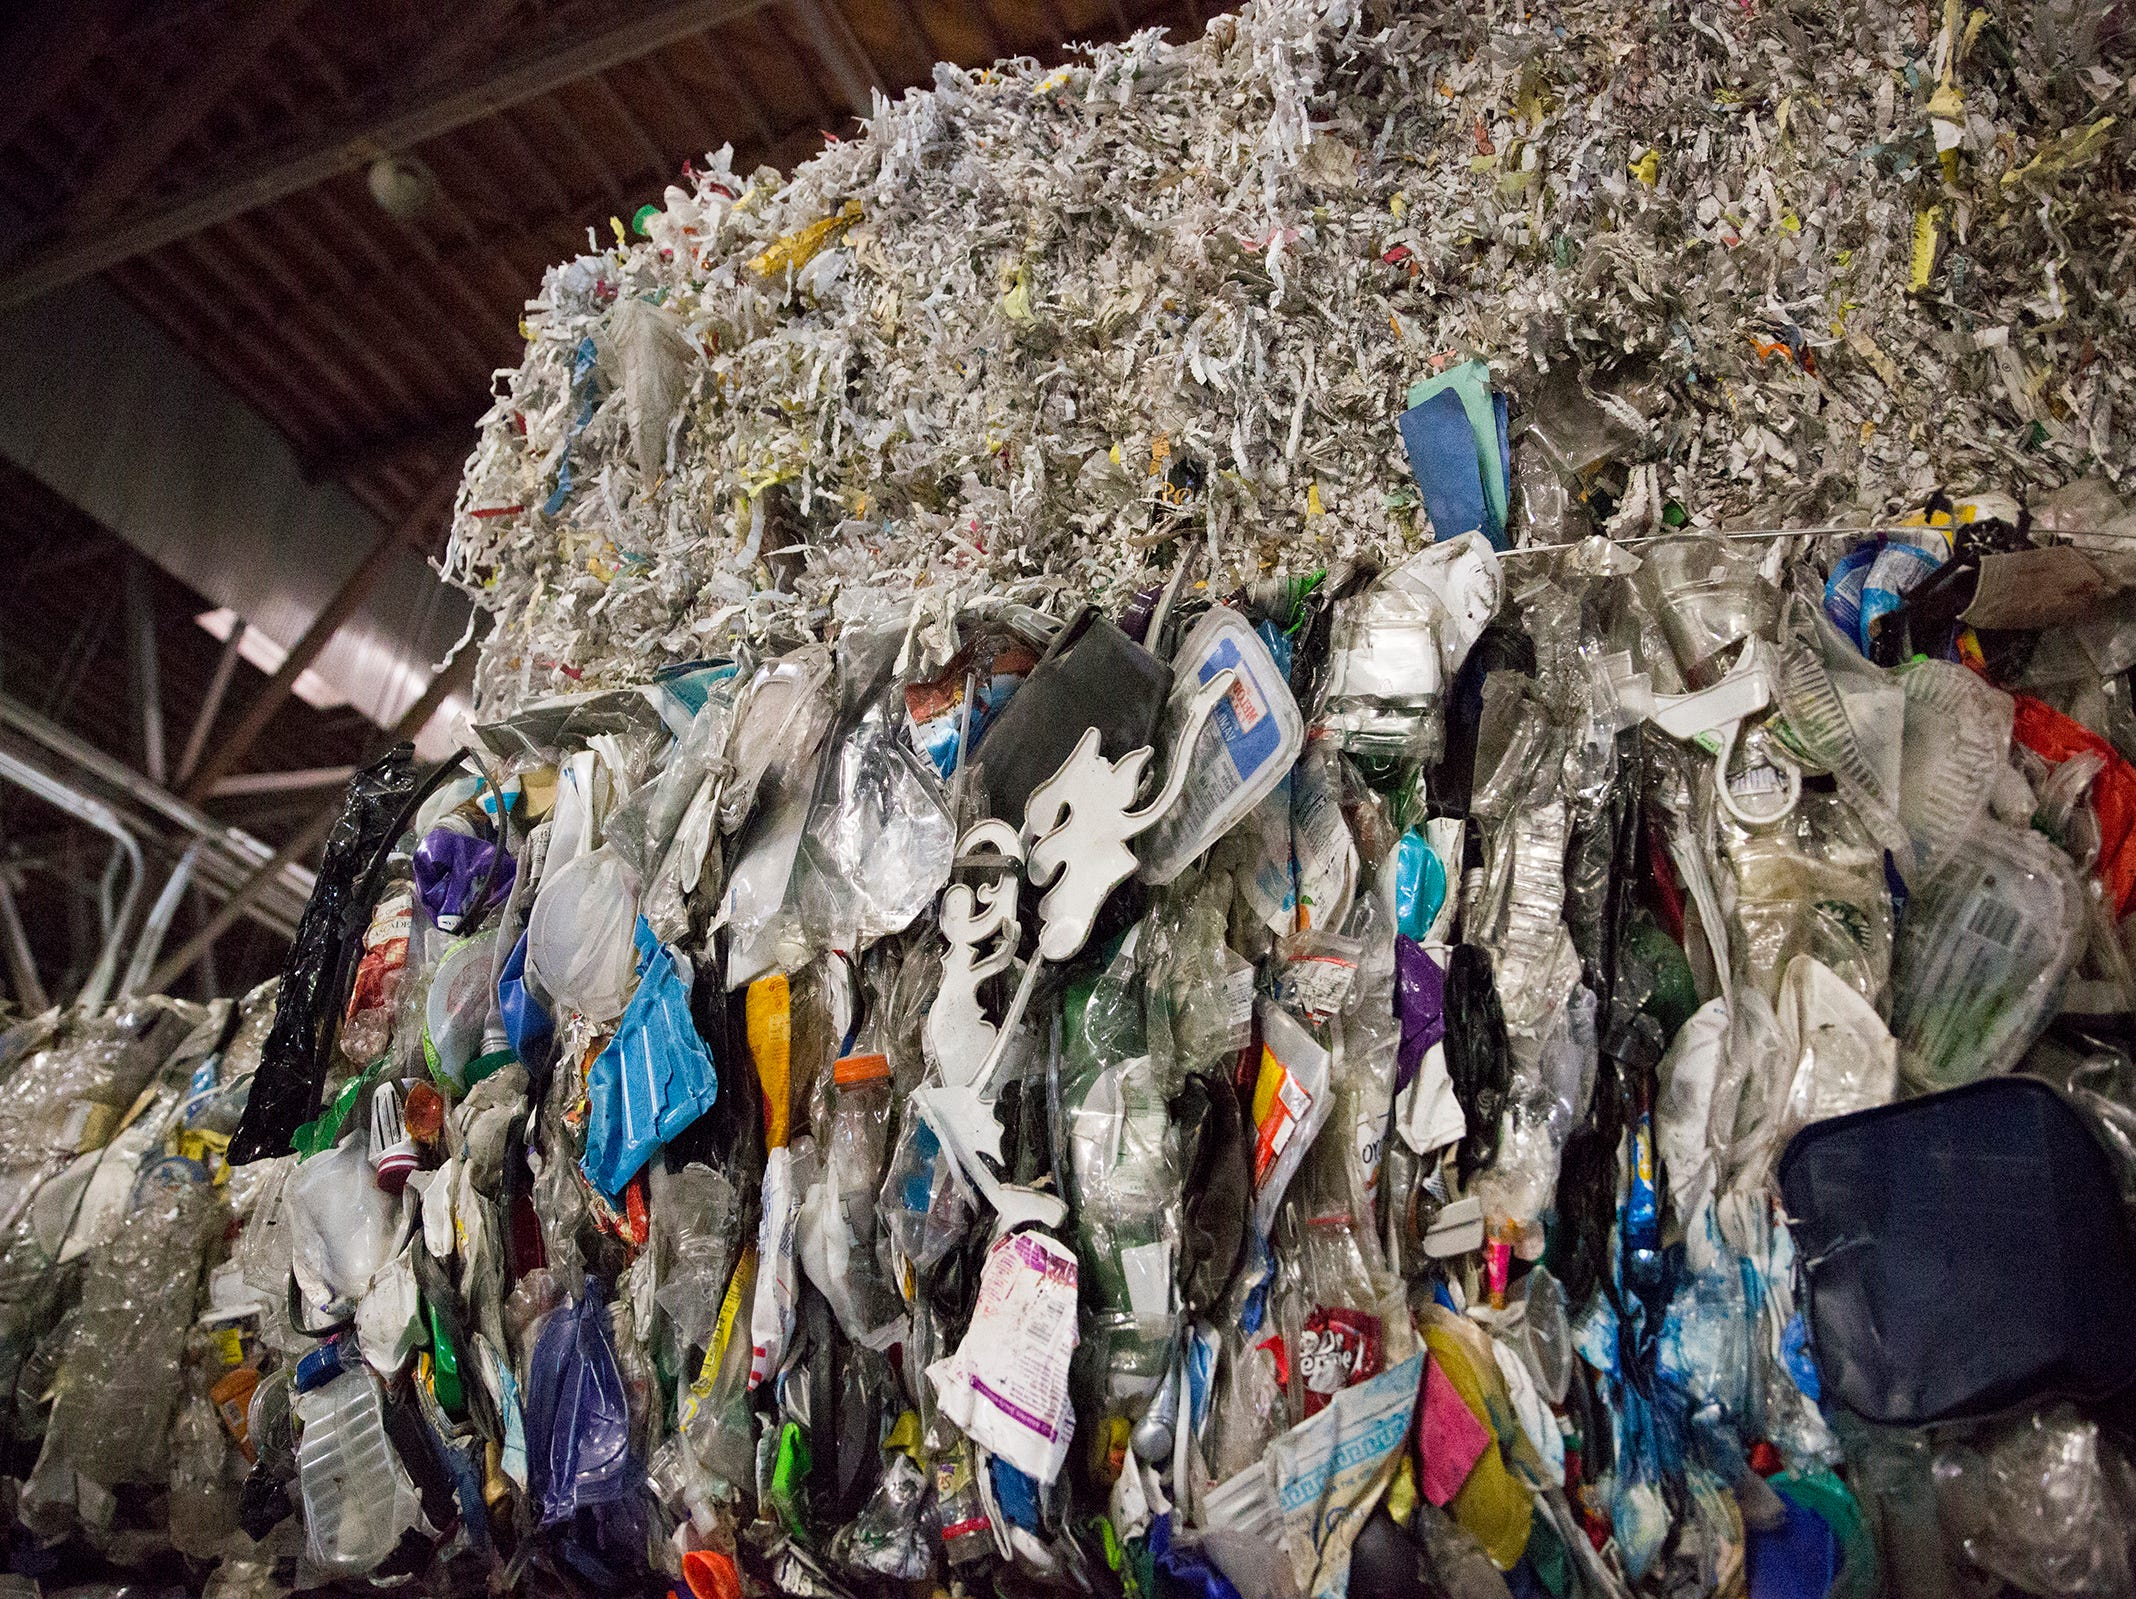 Recycled materials are stacked up at Garten Recycling in Salem on Thursday, Dec. 20, 2018.